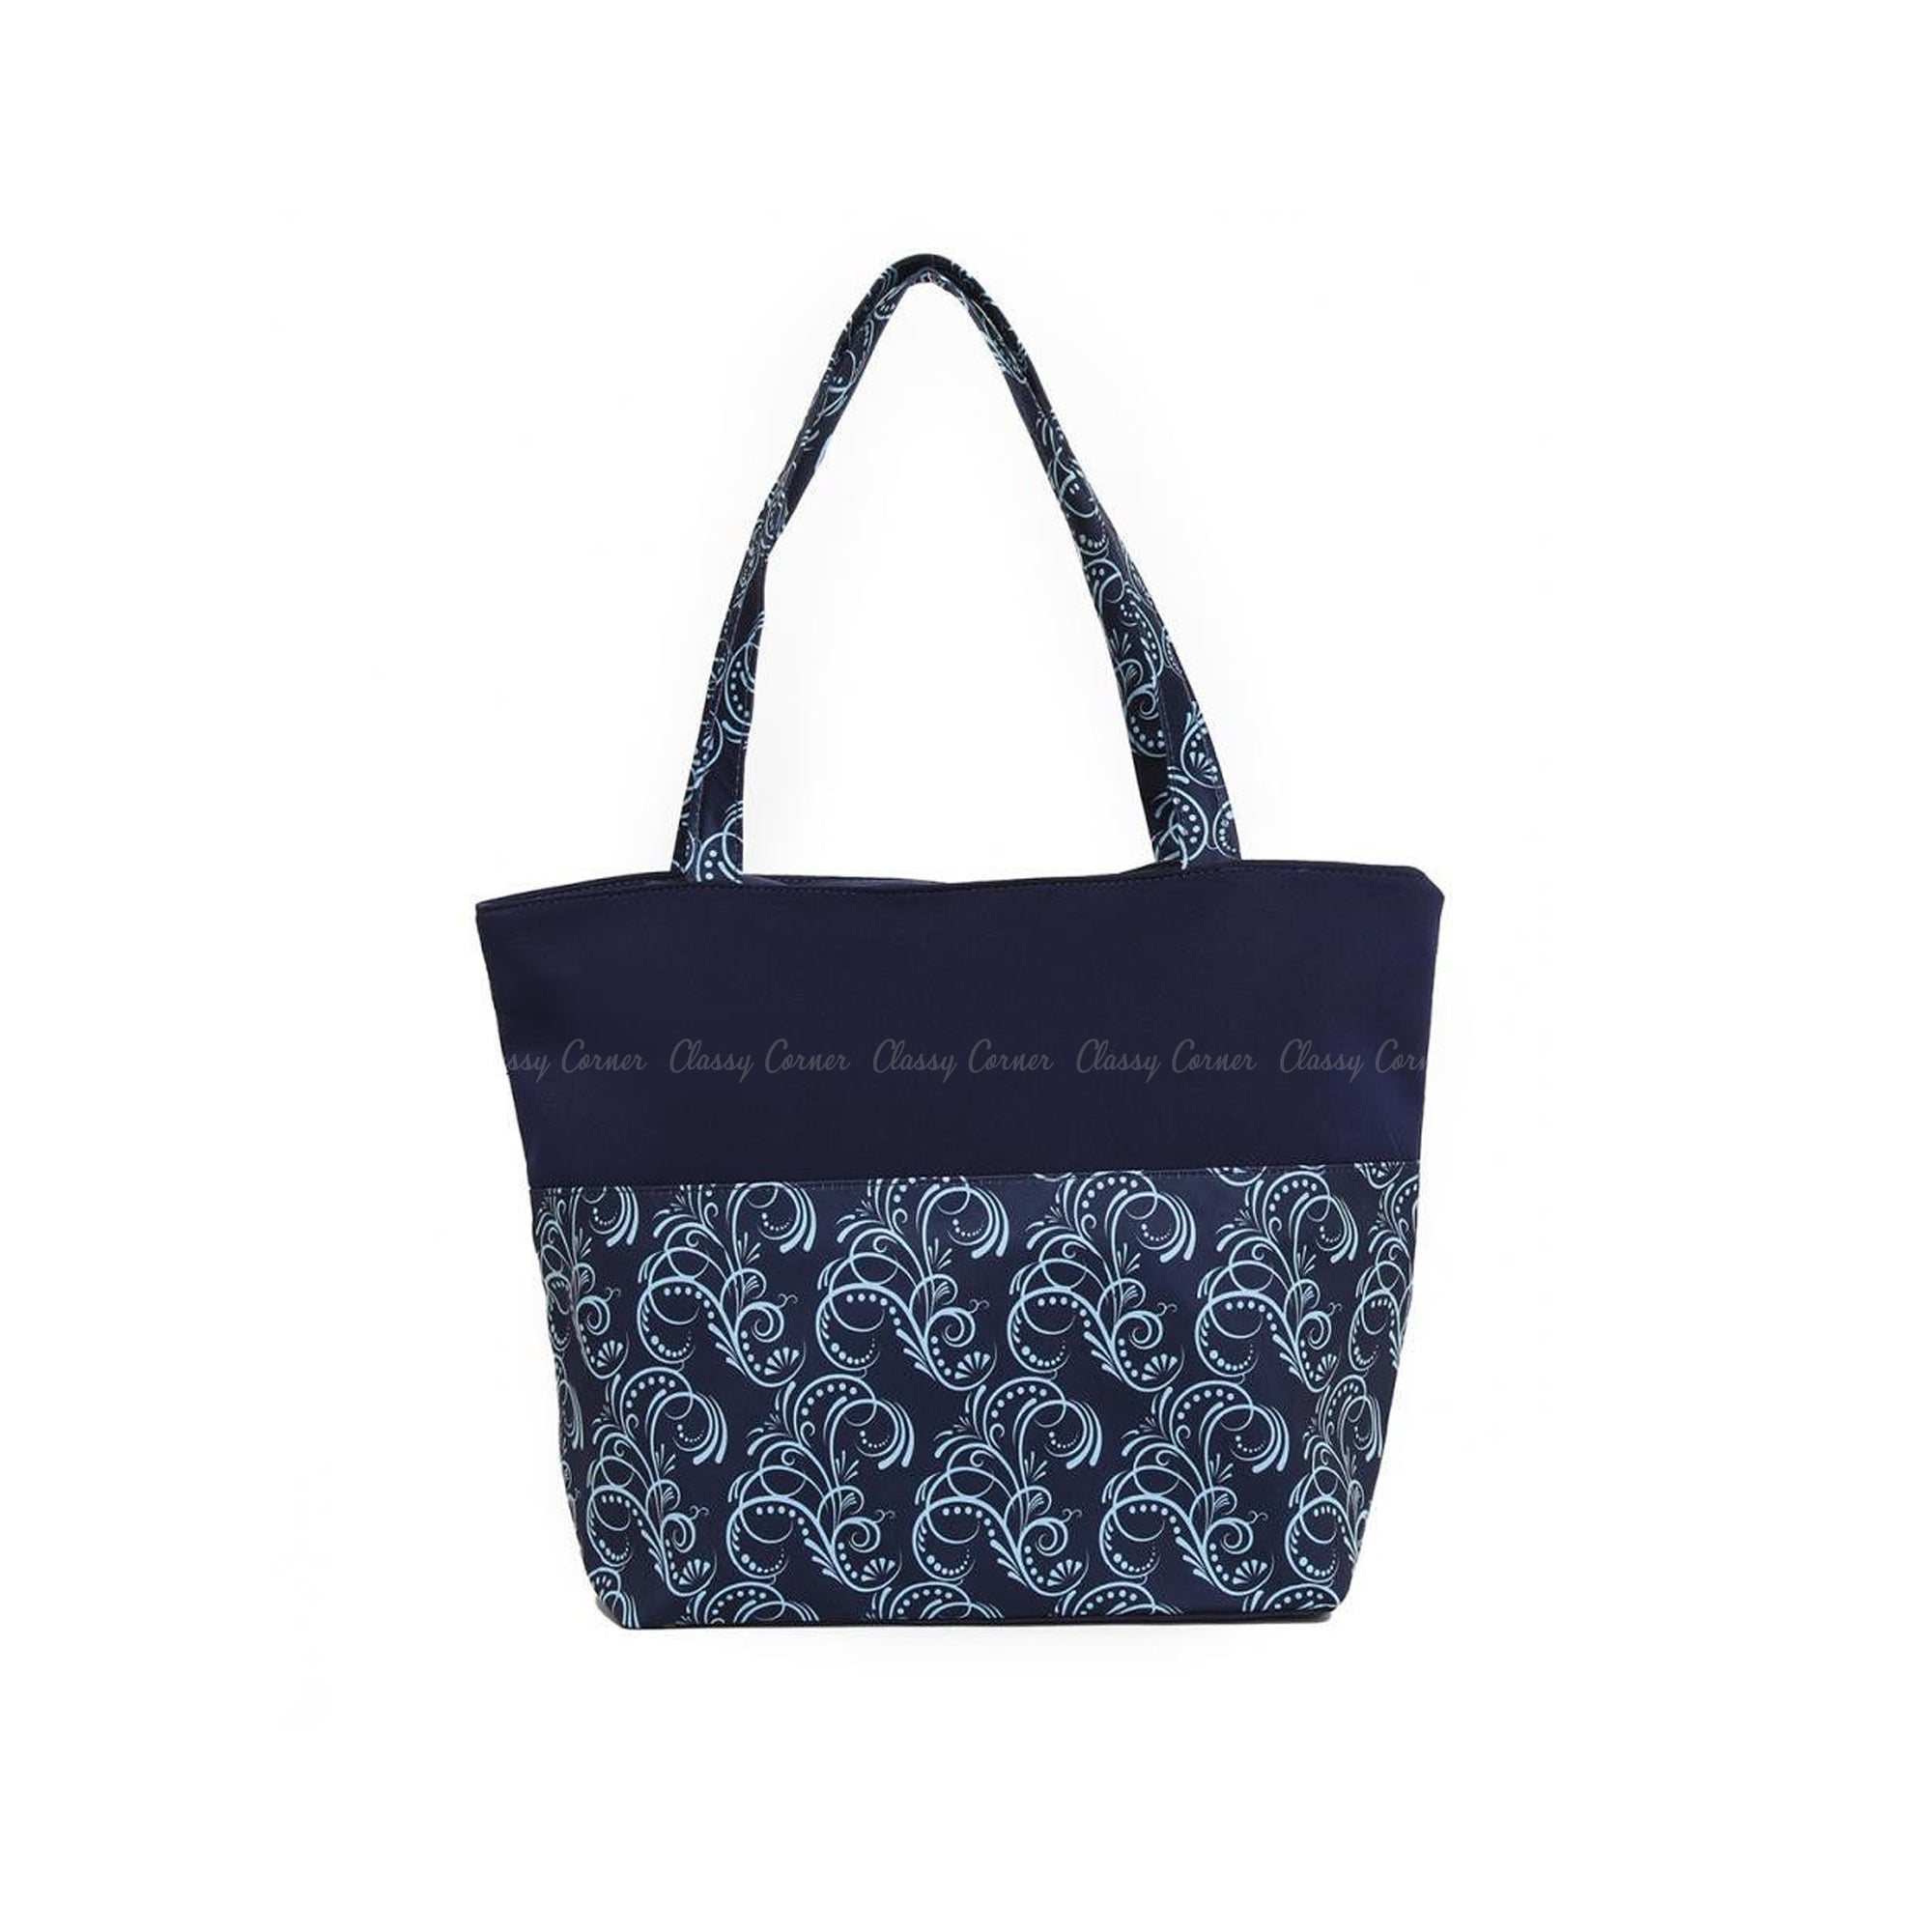 Blue Cursive Lines Print with Zipper Navy Blue Beach Tote Bag